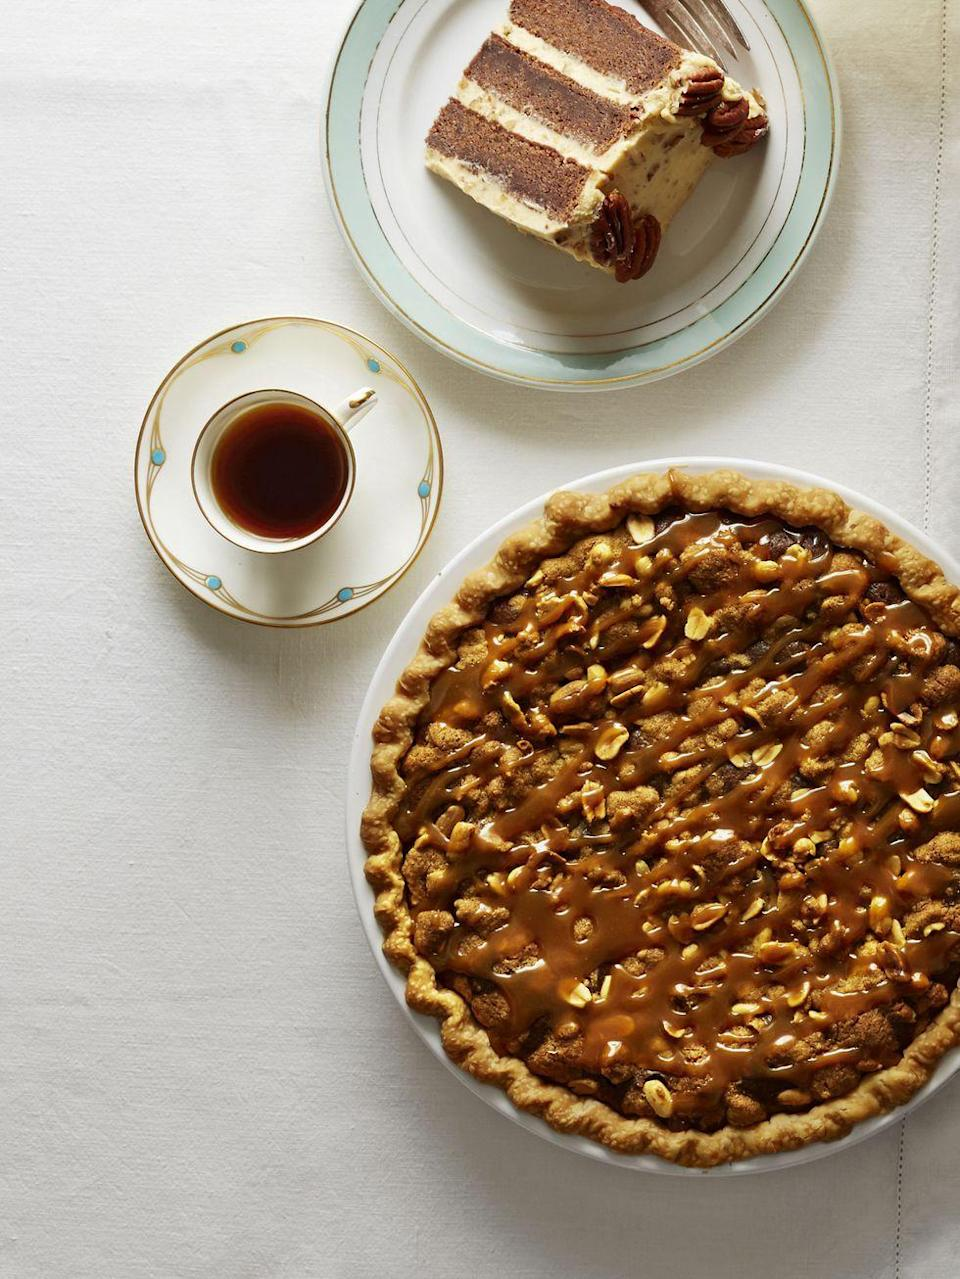 "<p>In every spoonful you'll taste this flavorful Thanksgiving pie's creamy peanut butter and chocolate filling.<br></p><p><strong><a href=""https://www.countryliving.com/food-drinks/recipes/a5906/salted-caramel-peanut-butter-fudge-pie-recipe-clx1114/"" rel=""nofollow noopener"" target=""_blank"" data-ylk=""slk:Get the recipe"" class=""link rapid-noclick-resp"">Get the recipe</a>.</strong></p><p><a class=""link rapid-noclick-resp"" href=""https://www.amazon.com/Camp-Chef-True-Seasoned-CIPIE10/dp/B000OXAQ6G?tag=syn-yahoo-20&ascsubtag=%5Bartid%7C10050.g.957%5Bsrc%7Cyahoo-us"" rel=""nofollow noopener"" target=""_blank"" data-ylk=""slk:SHOP PIE PANS"">SHOP PIE PANS</a> </p>"